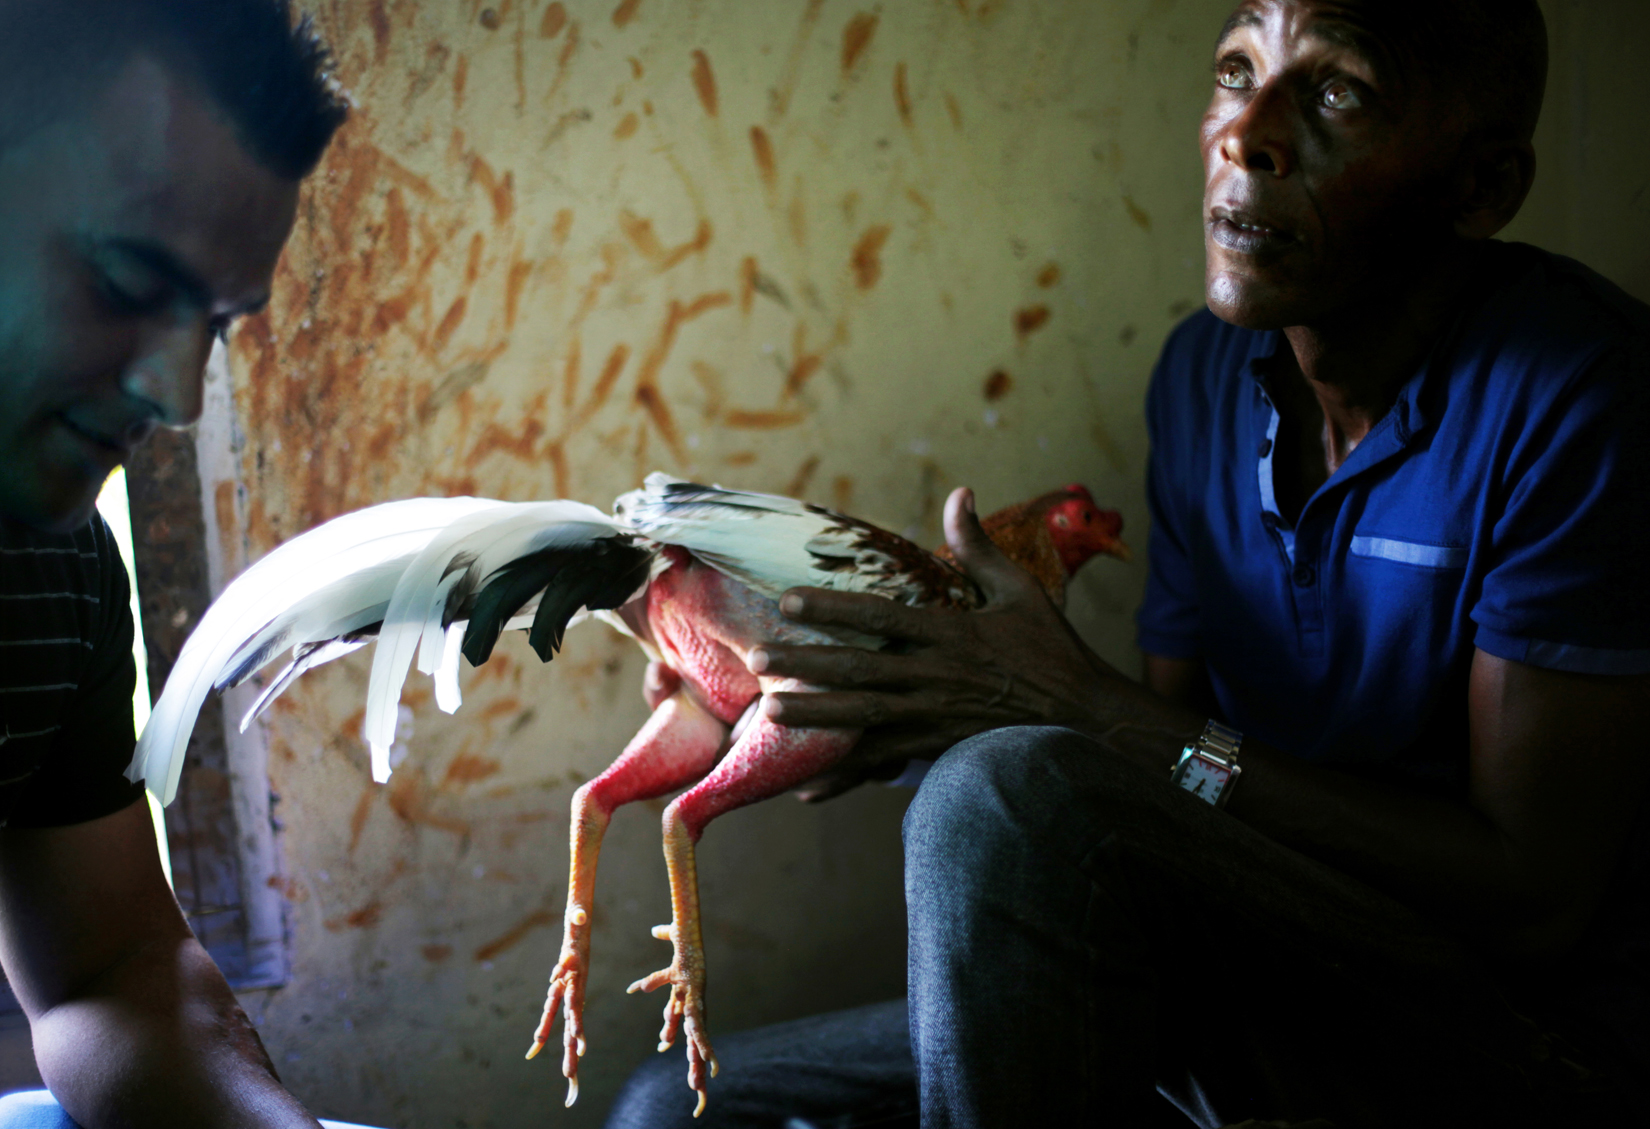 A chicken is groomed, and its nails sharpened and augmented with a long, sharp nail made of a turtle shell, before a cock-fighting event at a sports arena on April 18, 2015 in Managua, Cuba. Cock-fighting in Cuba is in the gray area of legal - state-run events such as this (non-private) functions are permitted, but not monetary betting. This is in part due to lingering bitterness over the control U.S. mafia used to exercise over casinos and prostitution in pre-revolutionary Cuba, the income from which allowed crime lords a certain level of interference in the country's political matters.